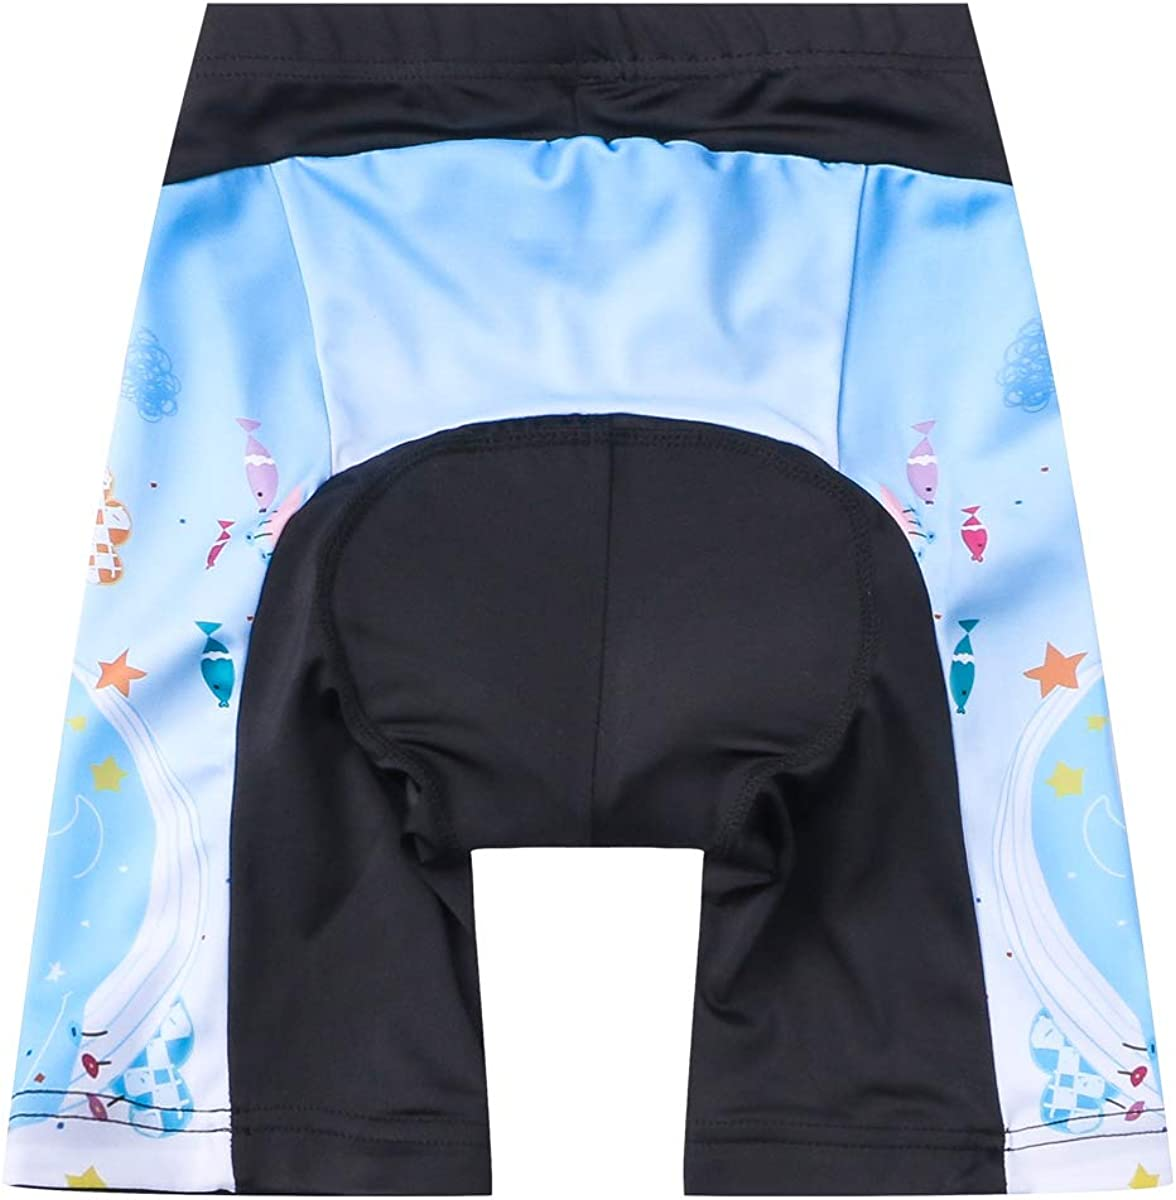 Children Cycling Bike Shorts Bicycle Riding Half Pants 3D Gel Padded Cycle Wear Tights